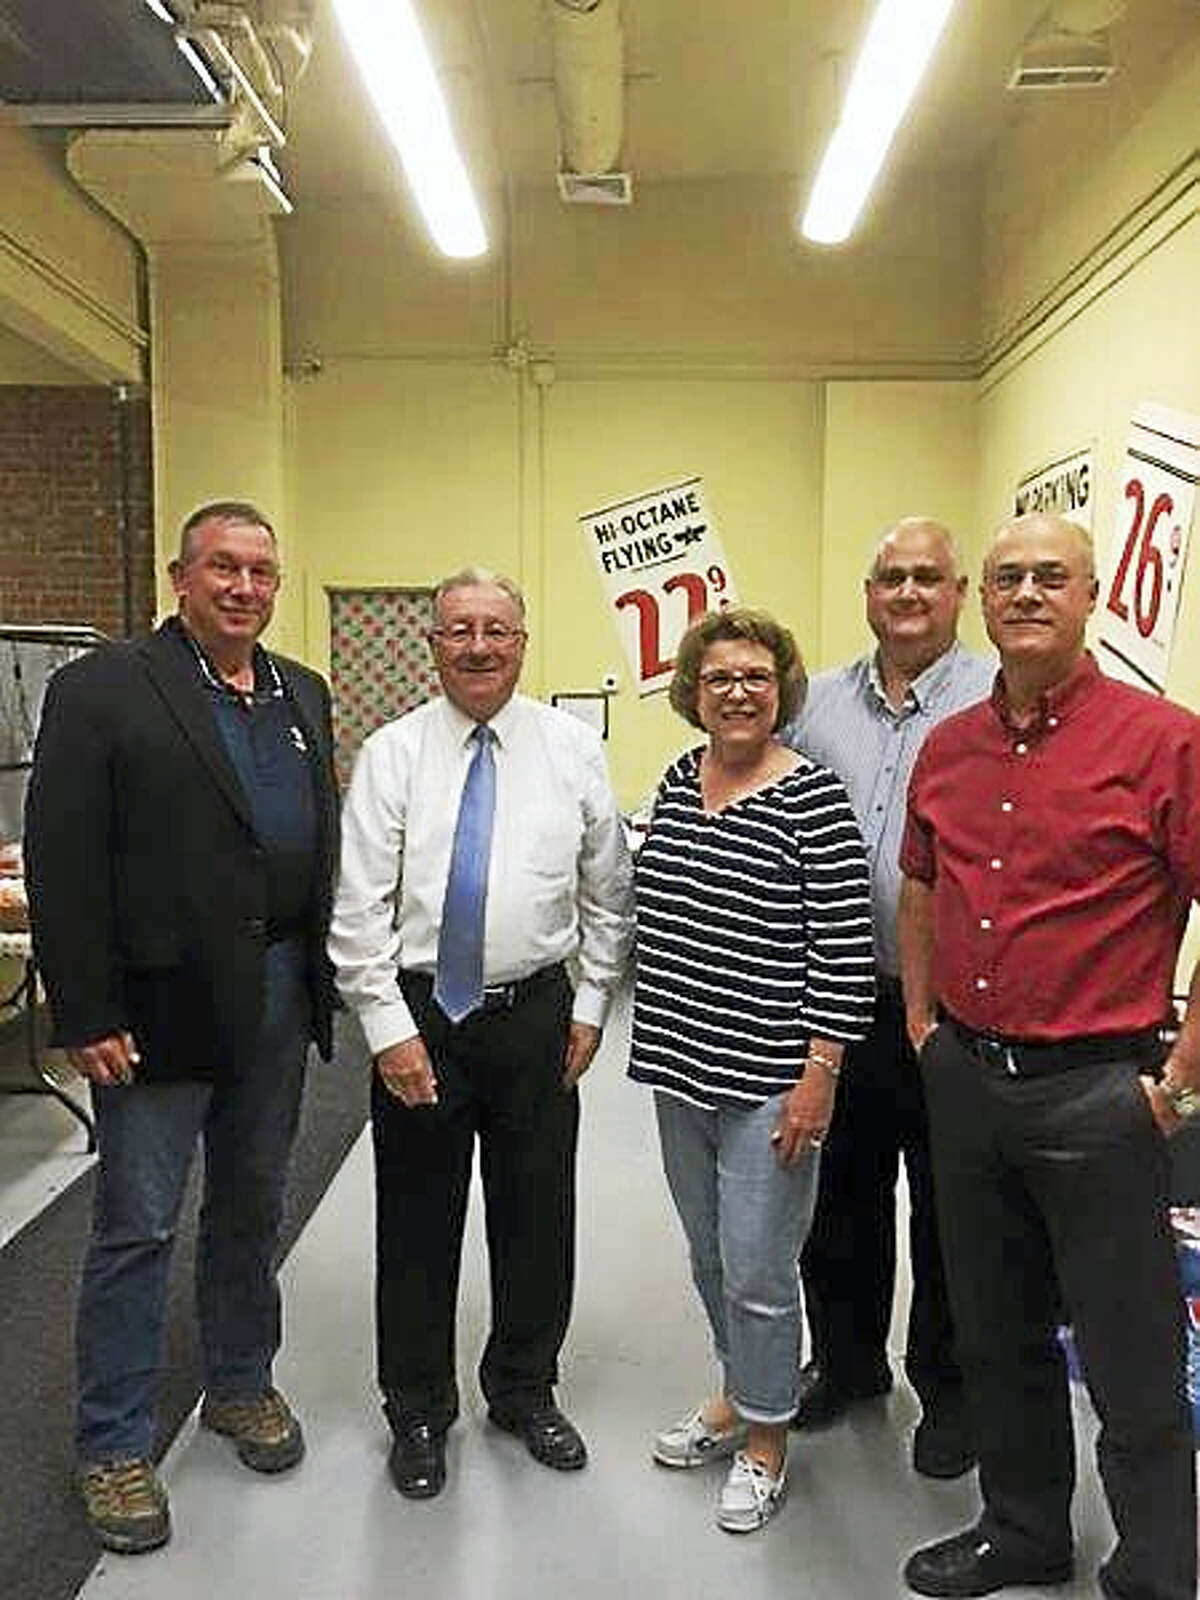 From left, Keith Risley, CEO; Owen Quinn, United Way executive director; Laurie McKenna, customer service rep; Steve Merhar, customer service manager; and Bob Lewis, general manager.